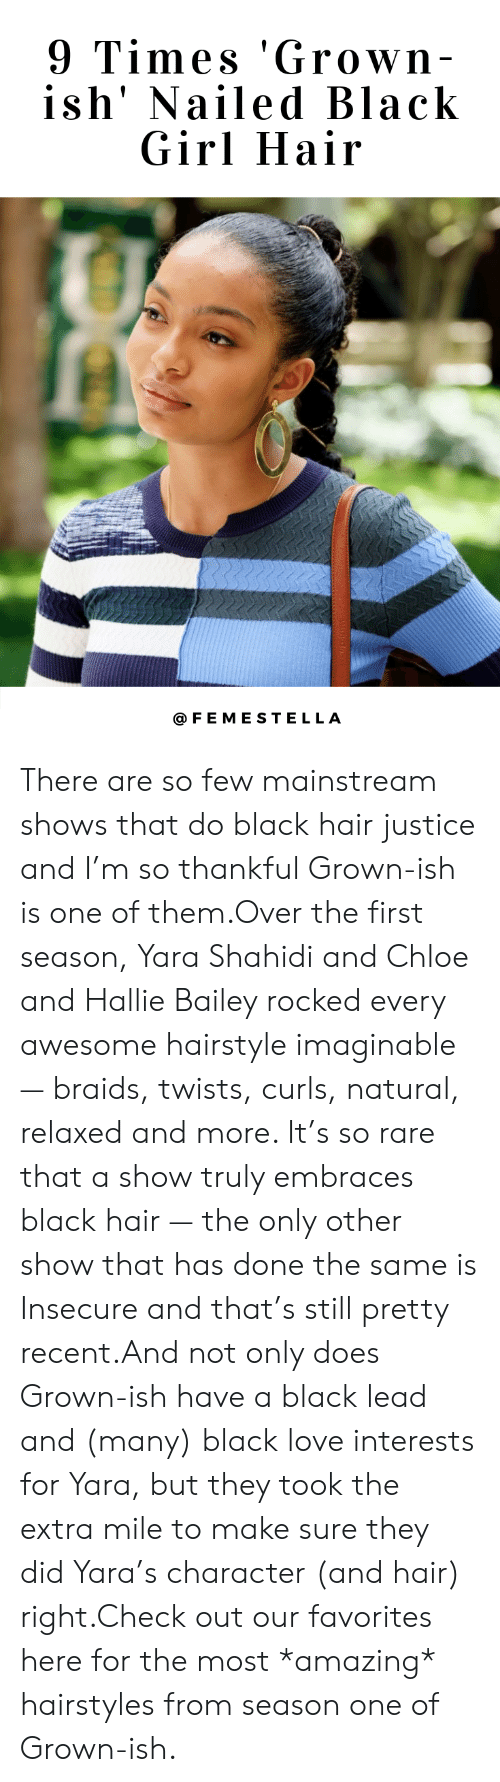 Braids, Love, and Target: 9 Times 'Grown  ish' Nailed Black  Girl Hair  @FEMESTELLA There are so few mainstream shows that do black hair justice and I'm so thankful Grown-ish is one of them.Over the first season, Yara Shahidi and Chloe and Hallie Bailey rocked every awesome hairstyle imaginable — braids, twists, curls, natural, relaxed and more. It's so rare that a show truly embraces black hair — the only other show that has done the same is Insecure and that's still pretty recent.And not only does Grown-ish have a black lead and (many) black love interests for Yara, but they took the extra mile to make sure they did Yara's character (and hair) right.Check out our favorites here for the most *amazing* hairstyles from season one of Grown-ish.